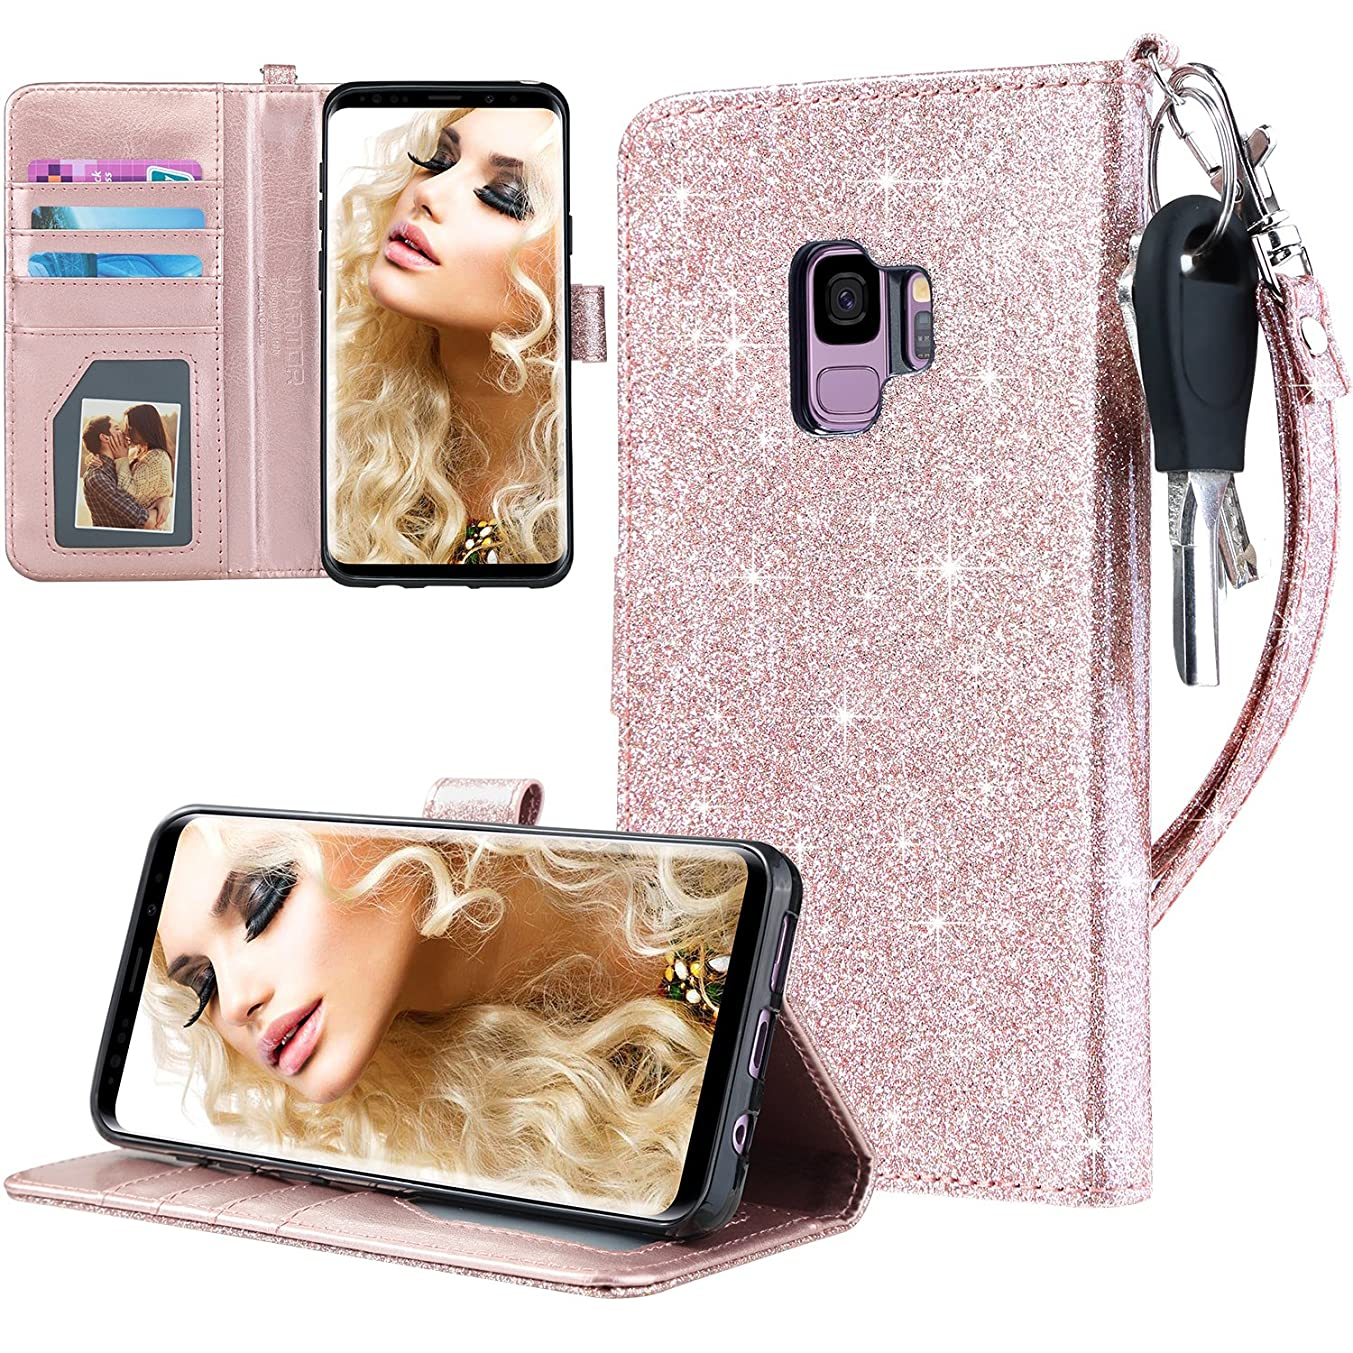 UARMOR Wallet Case for Samsung Galaxy S9, Luxury PU Leather Glitter Bling Sparkle Flip Folio Case with Hand Strap Built-in Credit Card / ID Card Slots and Kickstand Feature Case, Rose Gold